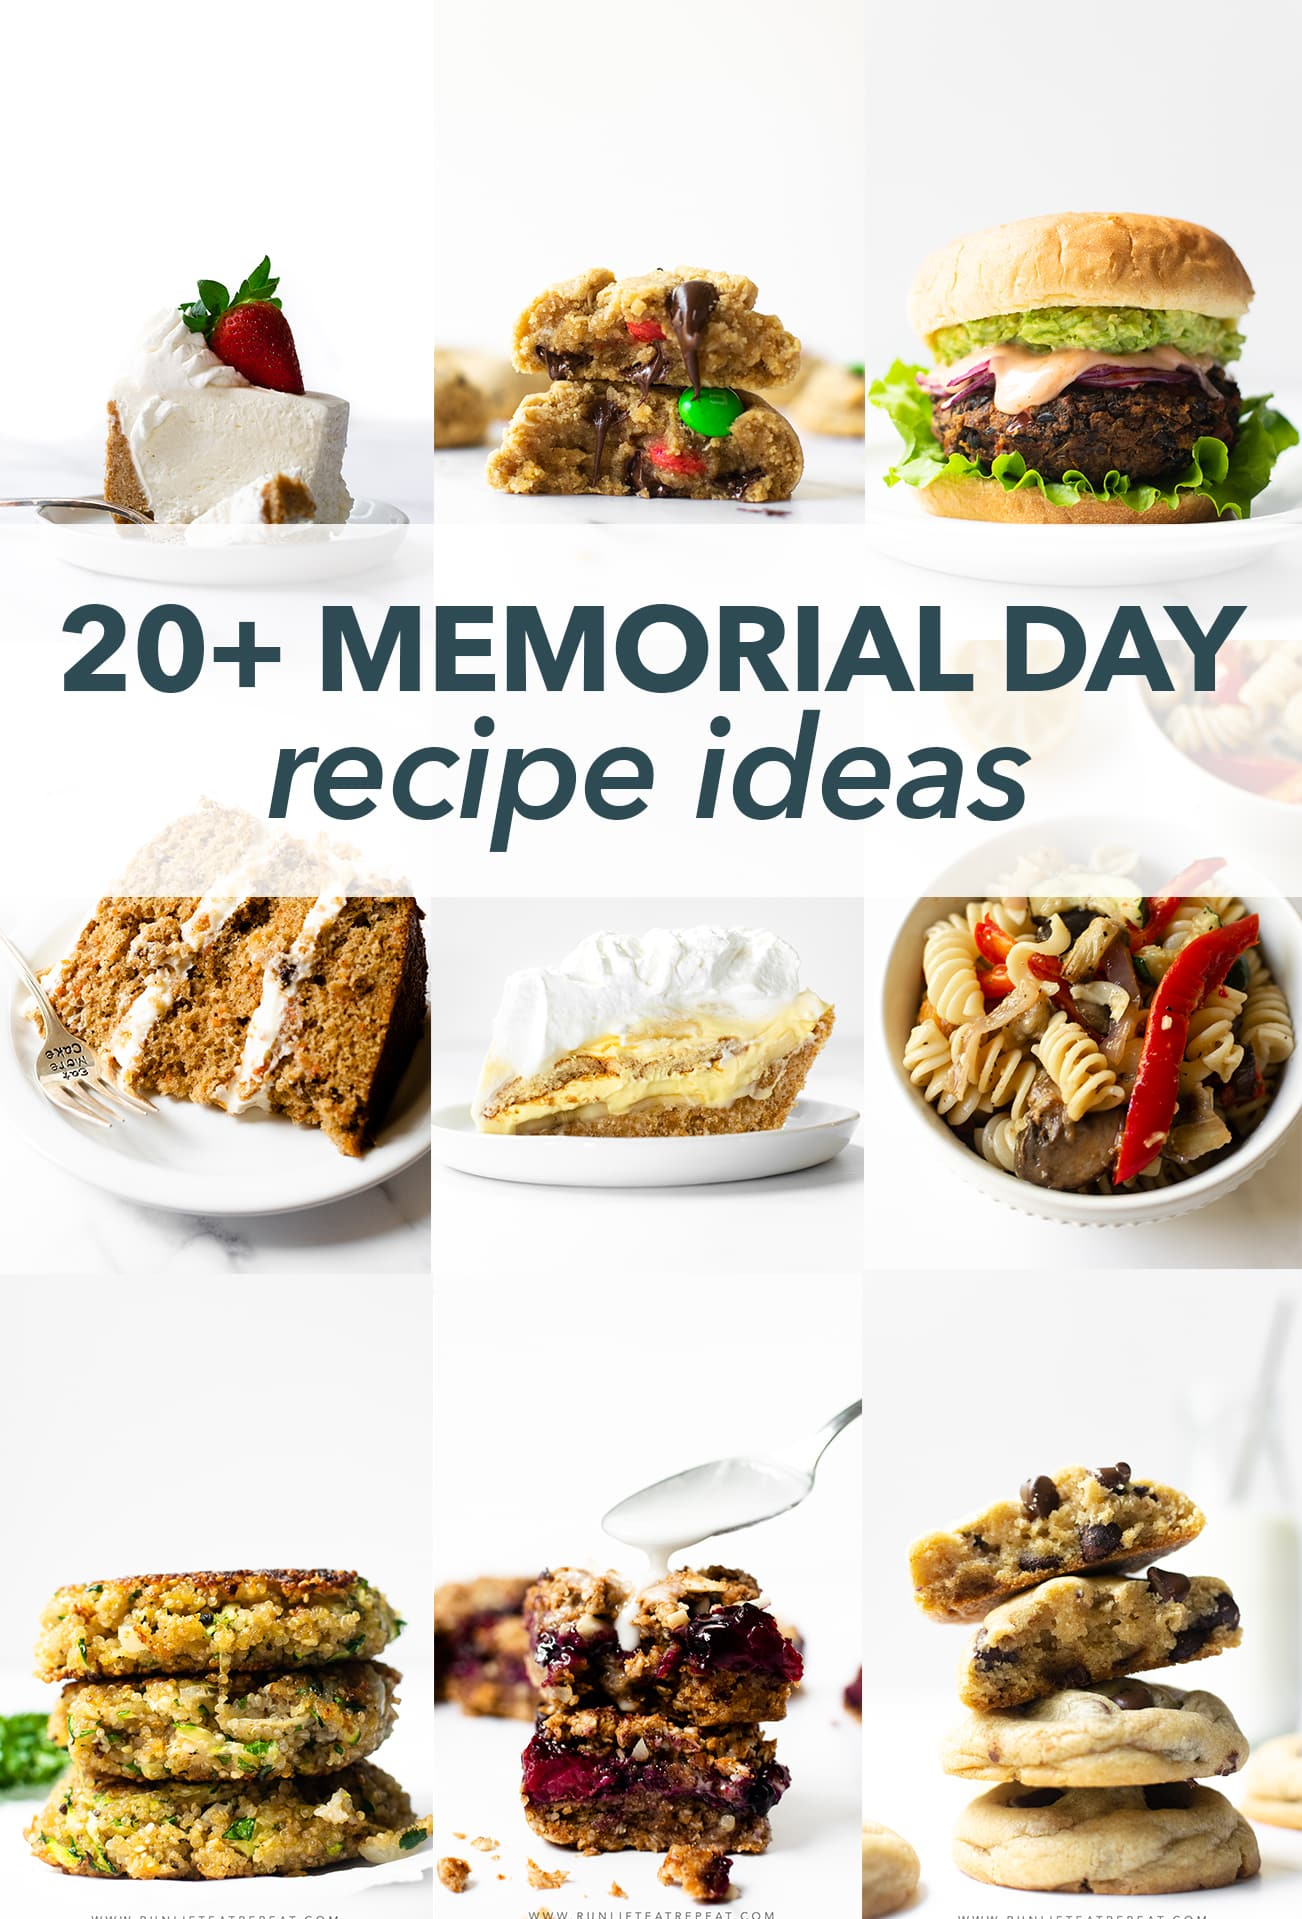 From turkey burgers to black bean burgers to banana pudding pie to classic chocolate chip cookies, find inspiration with this collection of Memorial Day recipes.